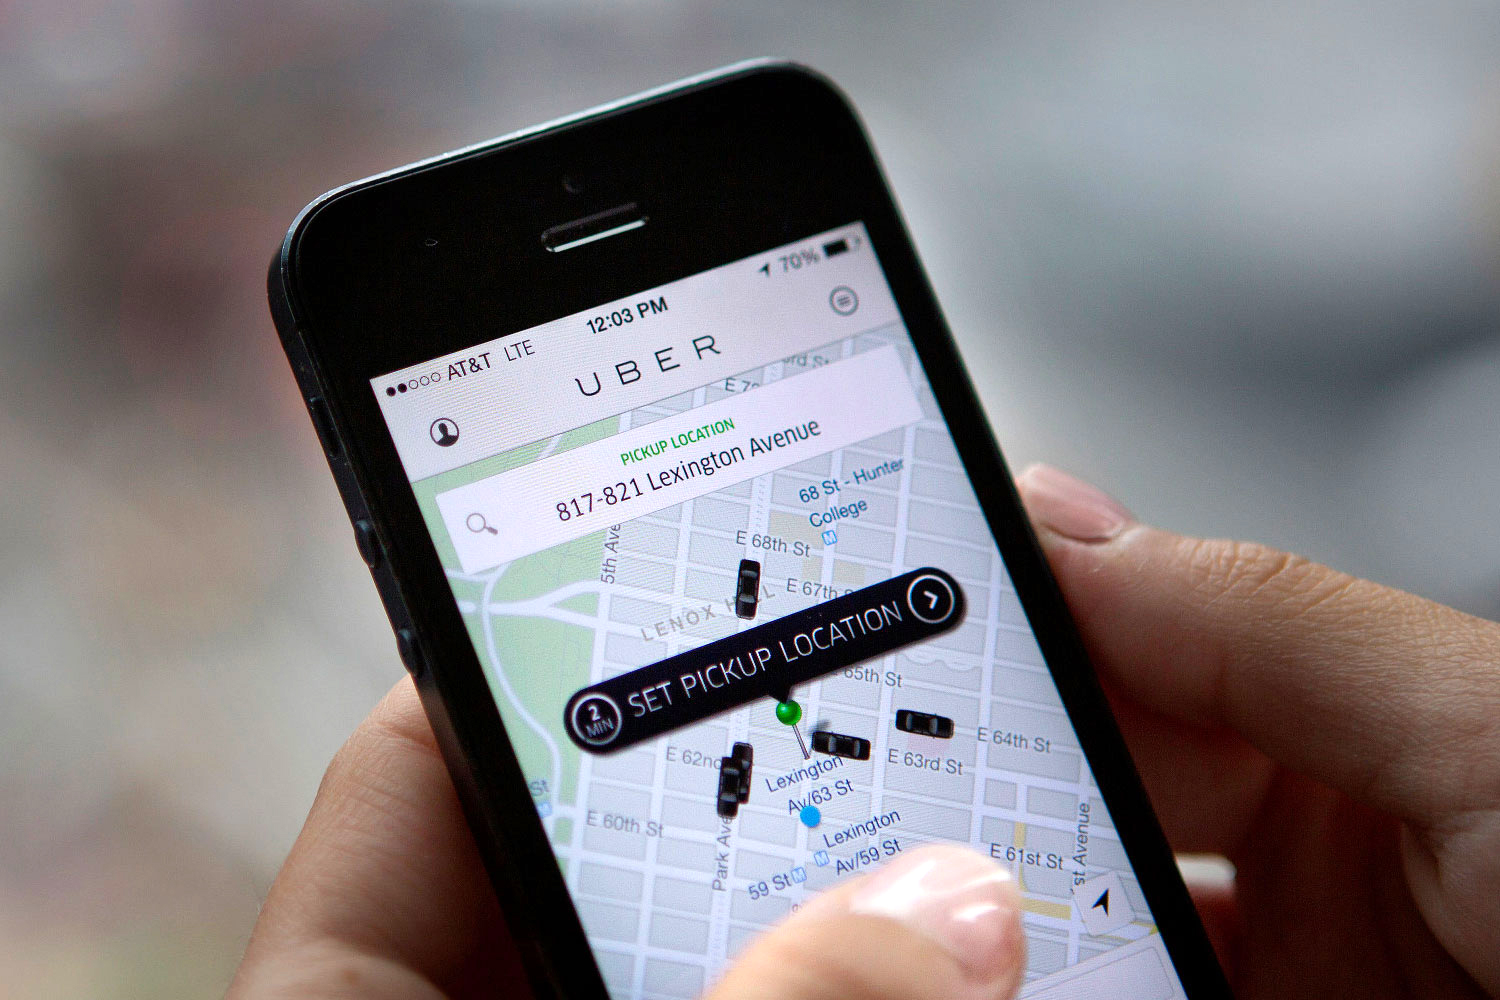 Uber integrates full service within BlackBerry Messenger